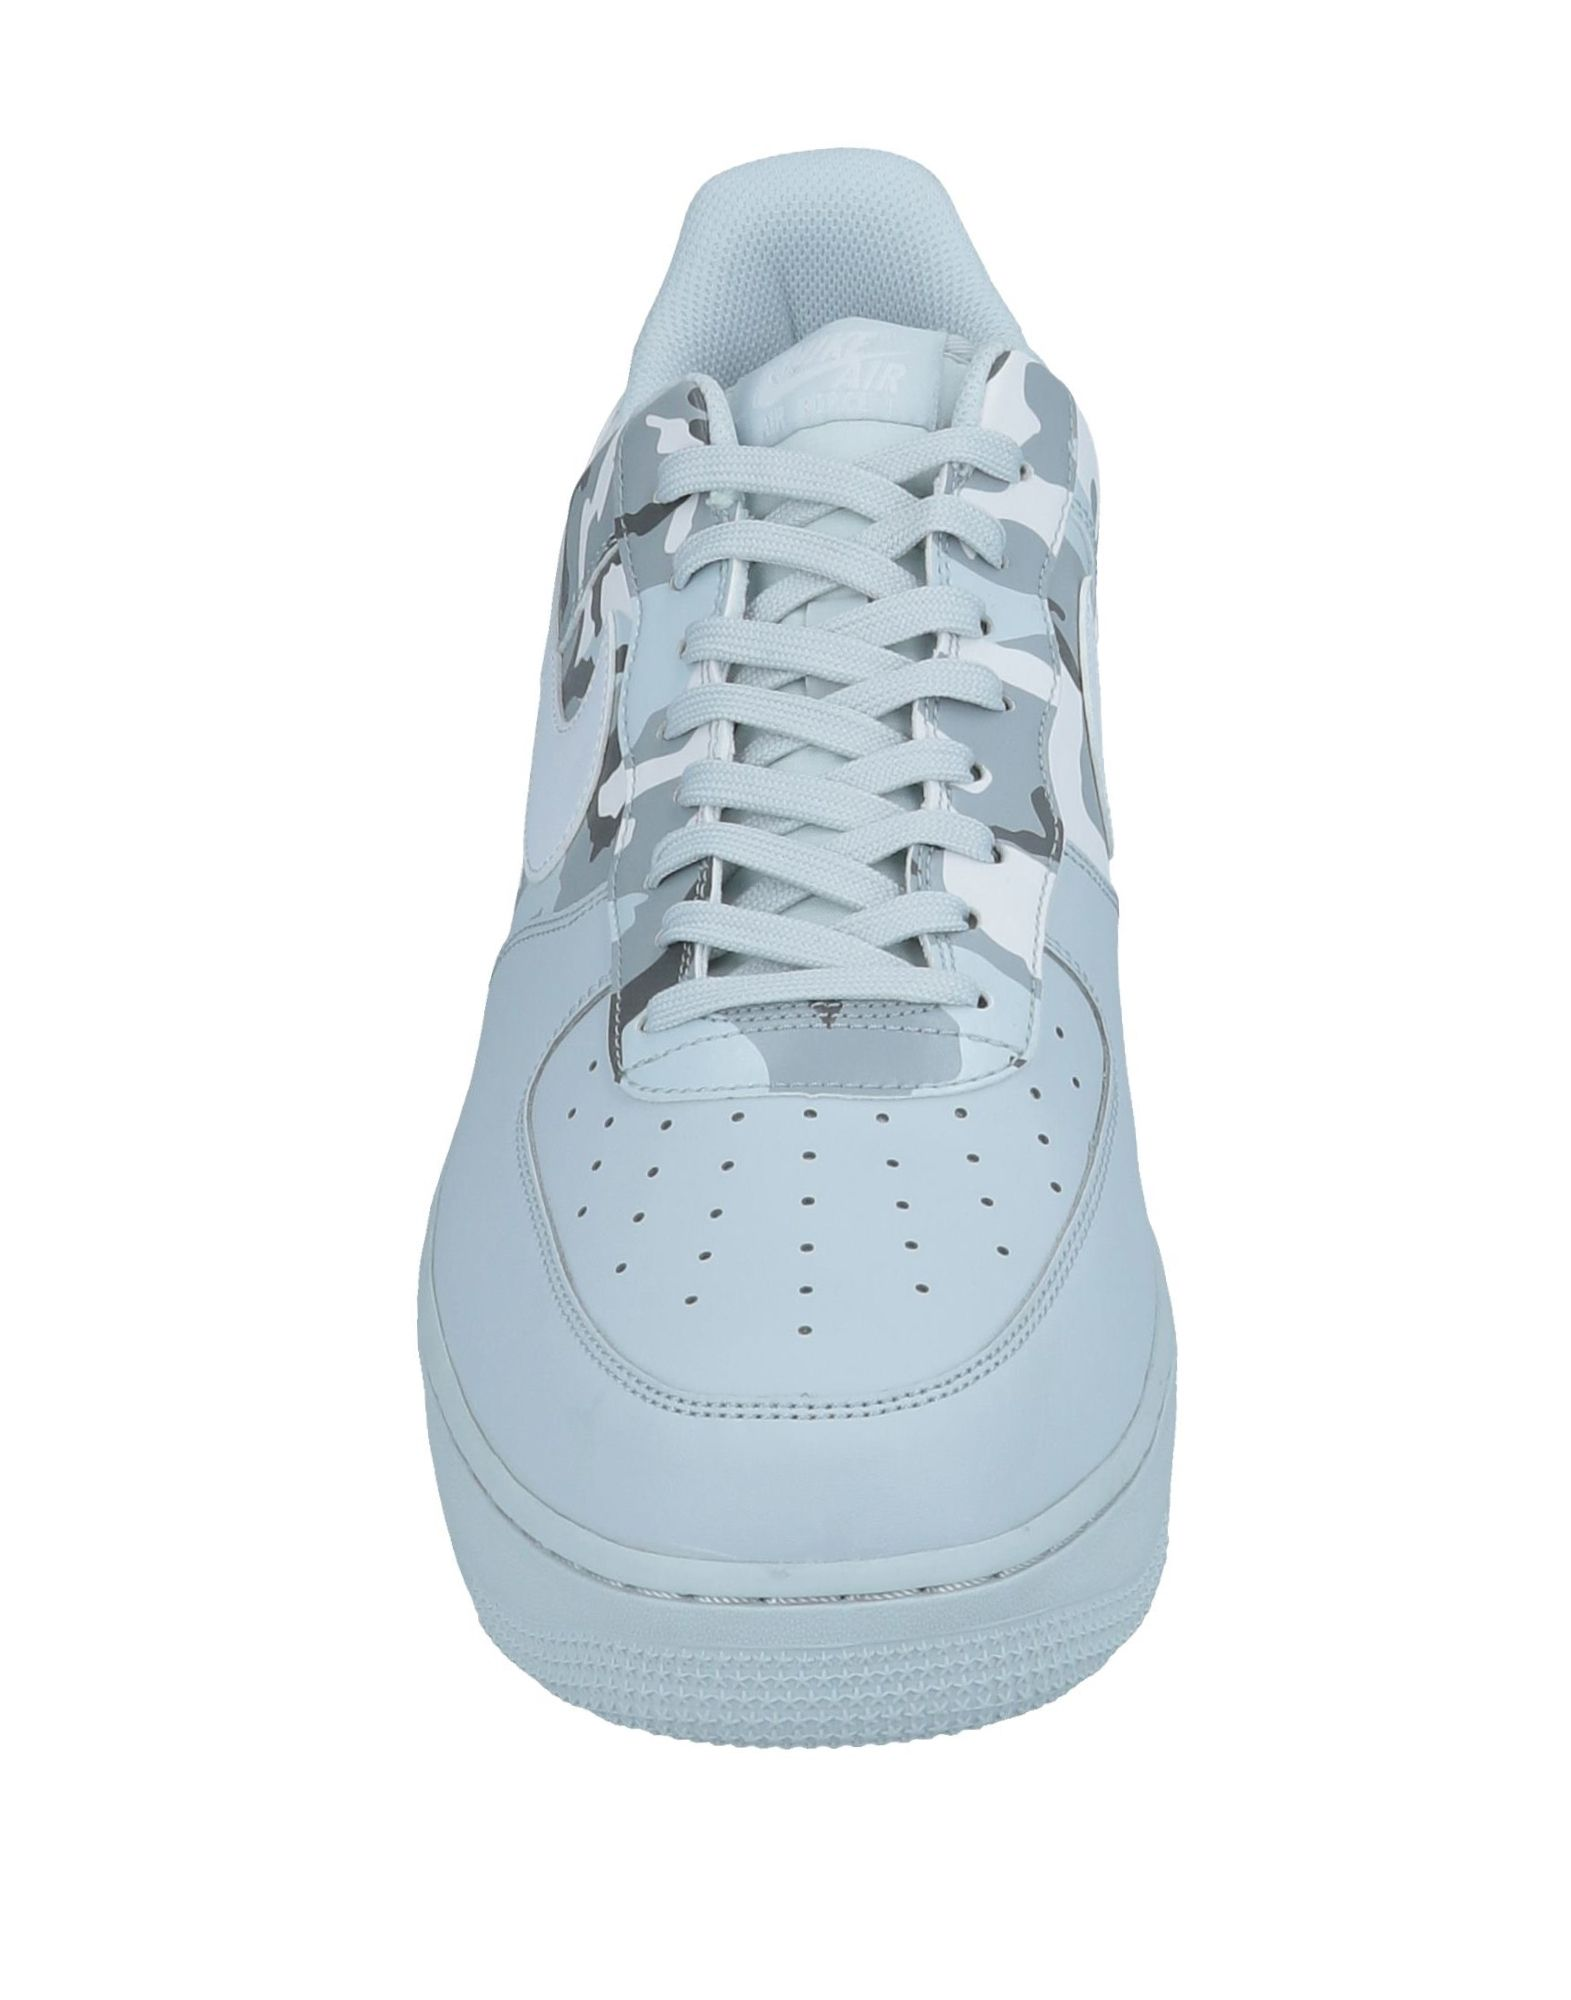 Nike Sneakers  - Men Nike Sneakers online on  Sneakers Australia - 11557852AB c44921